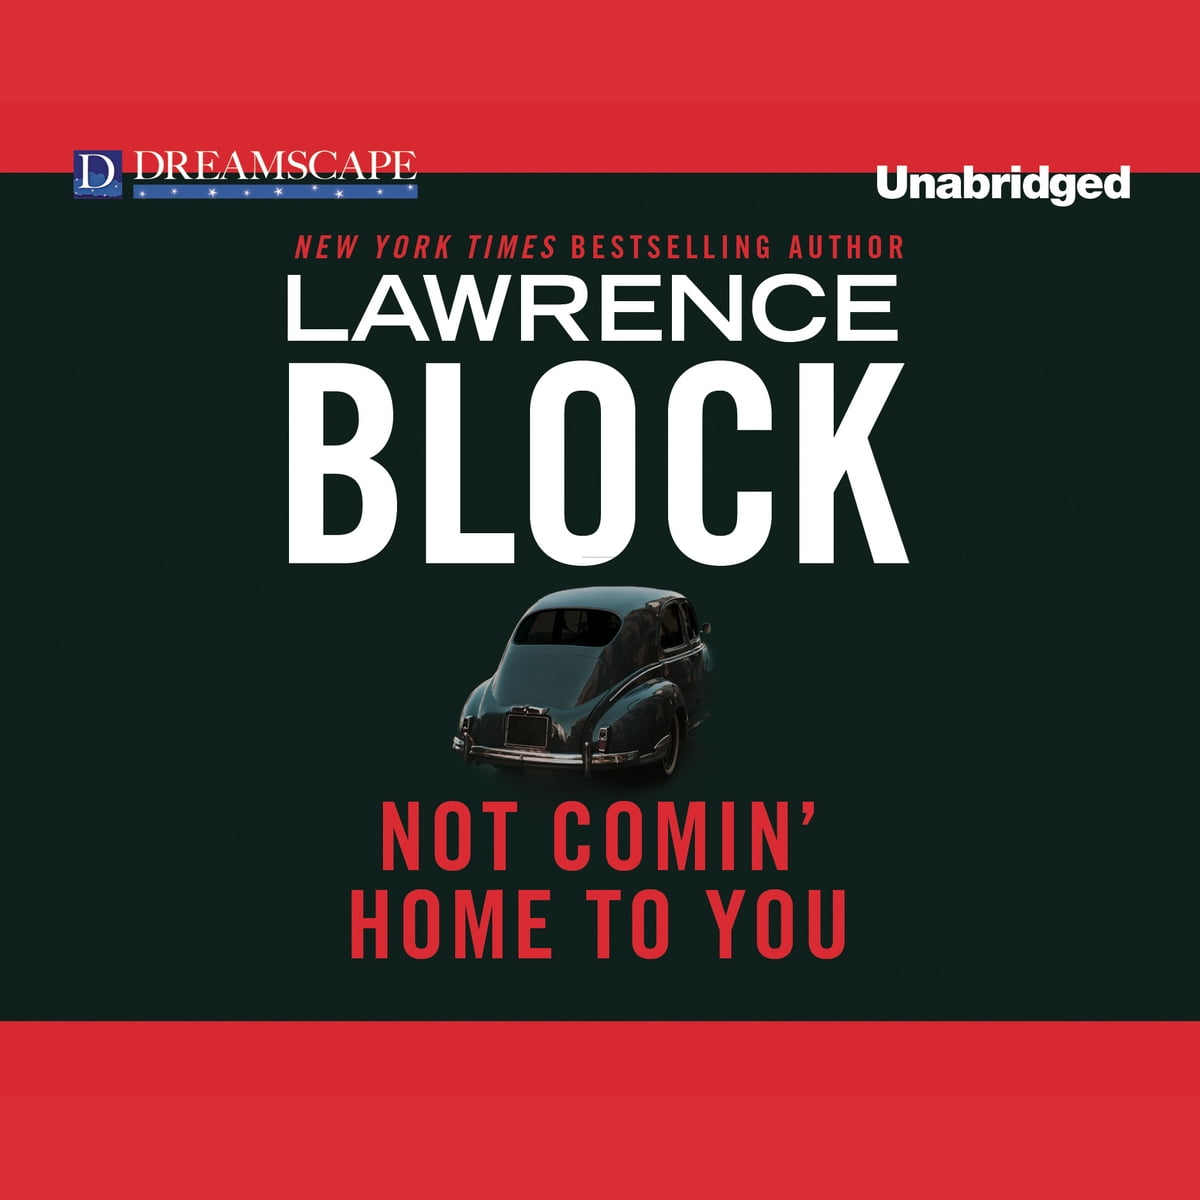 Not in Home to You Audiobook by Lawrence Block